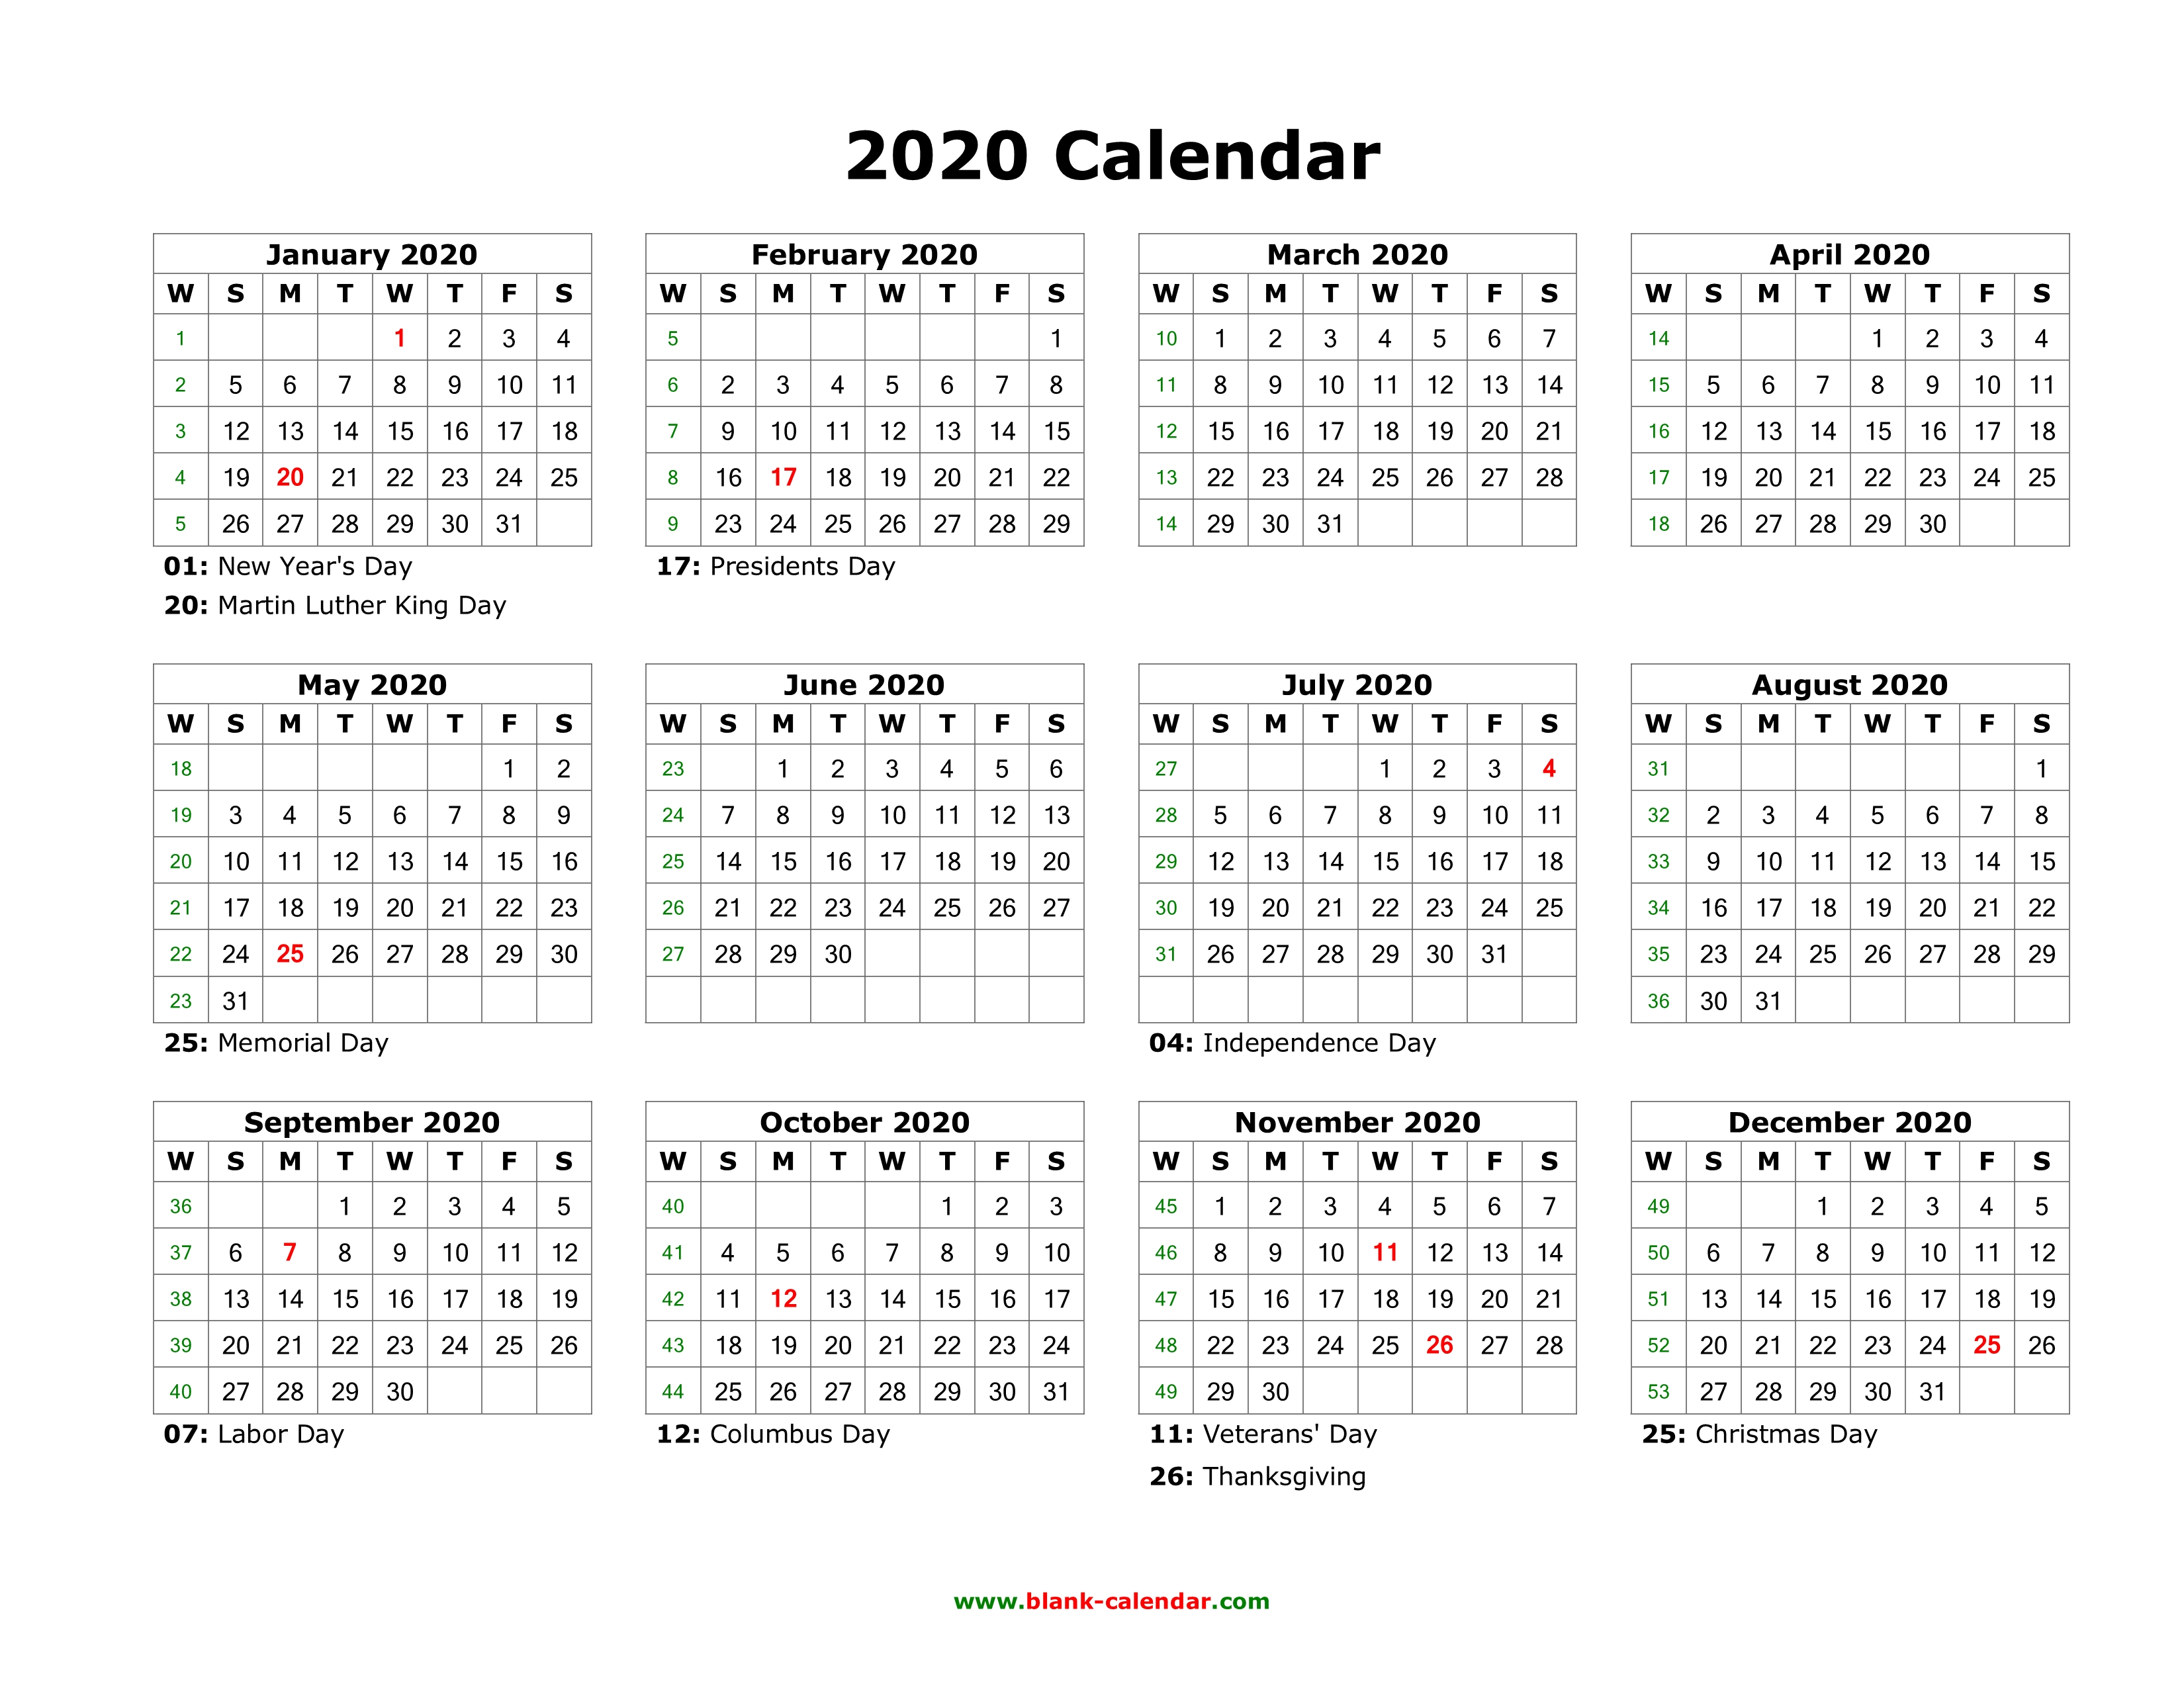 Blank Calendar For 2020 Download Blank Calendar 2020 with US Holidays (12 months on one